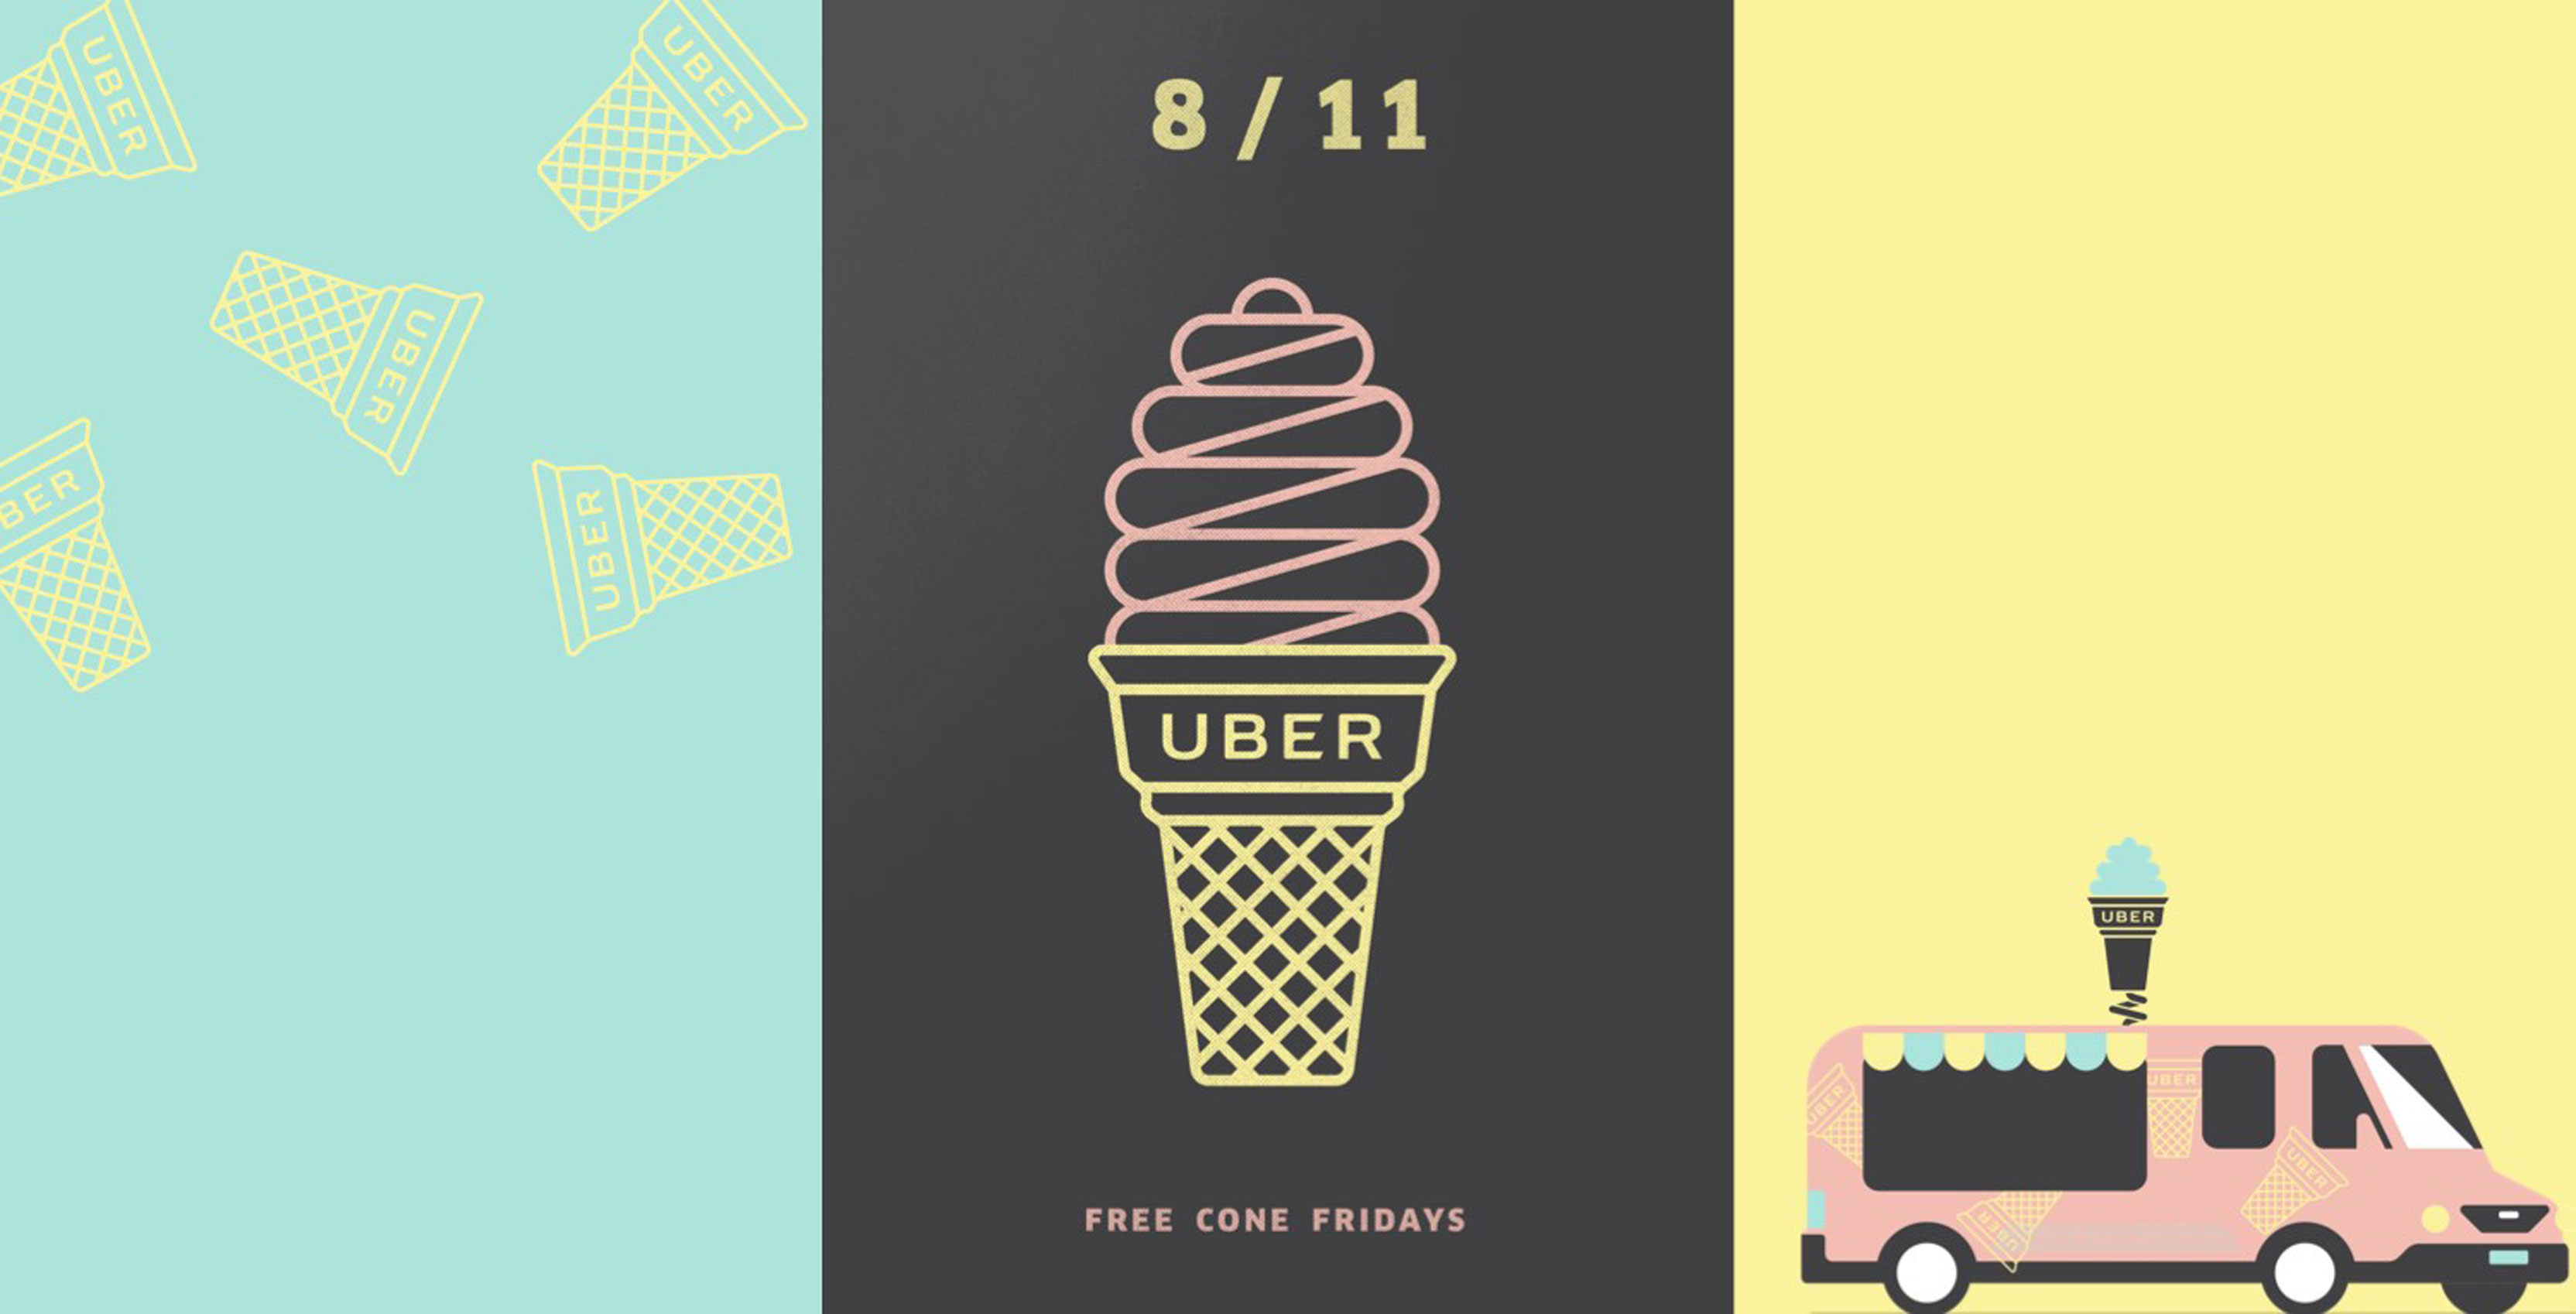 Uber now offering free ice cream on Friday's in San Francisco